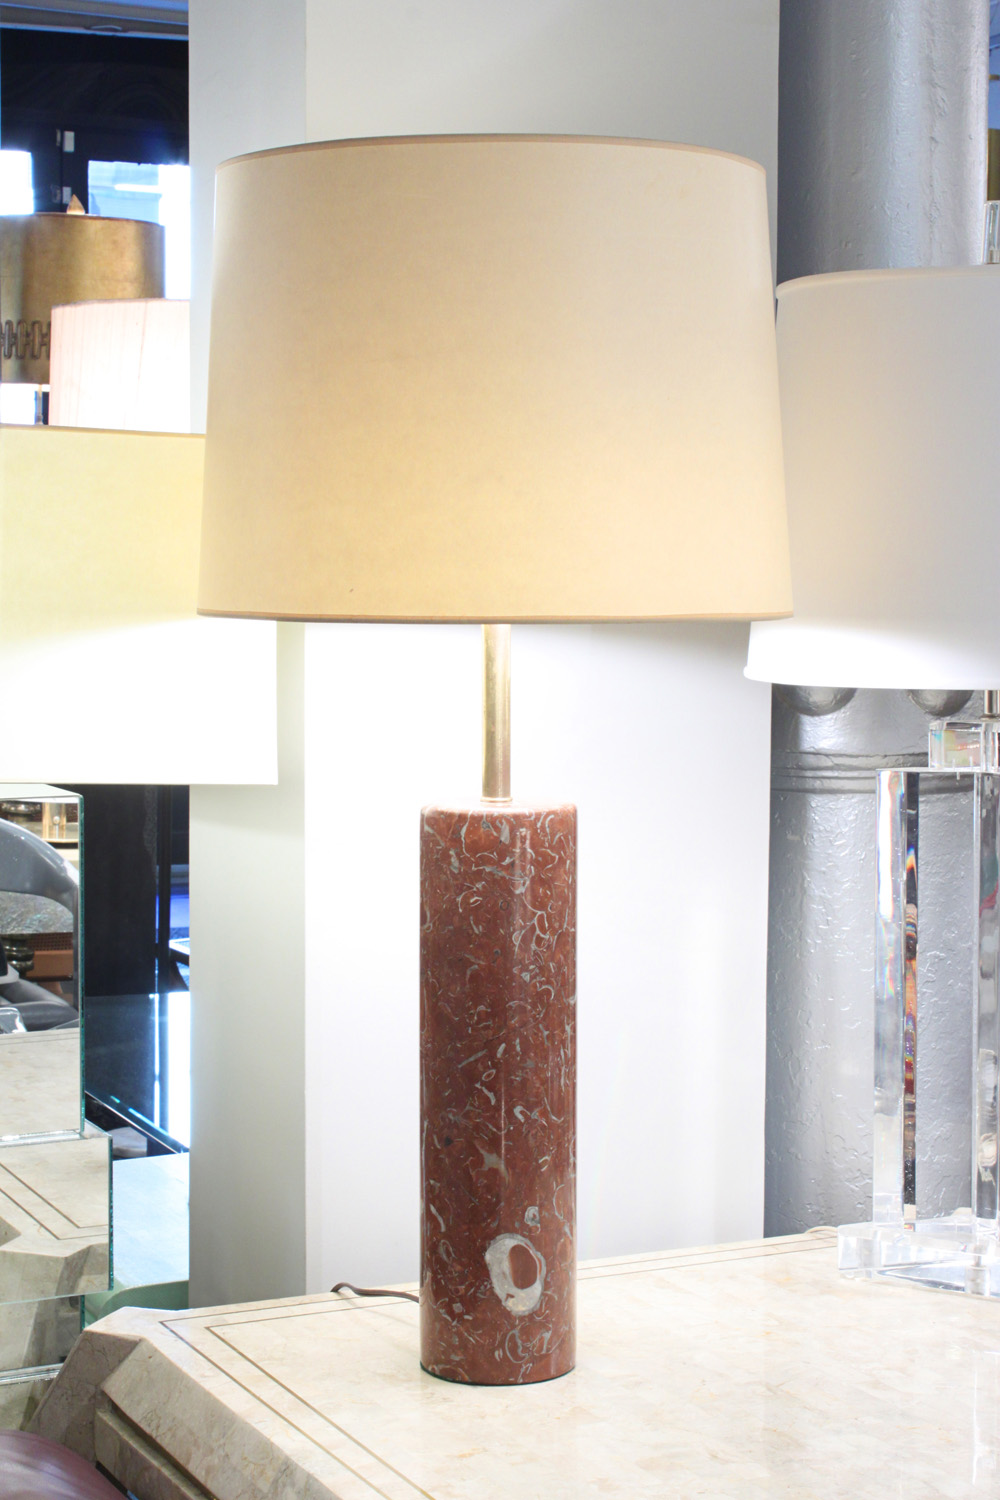 Nessen 18 red marble+brass tablelamp231 detail4 hires.jpg